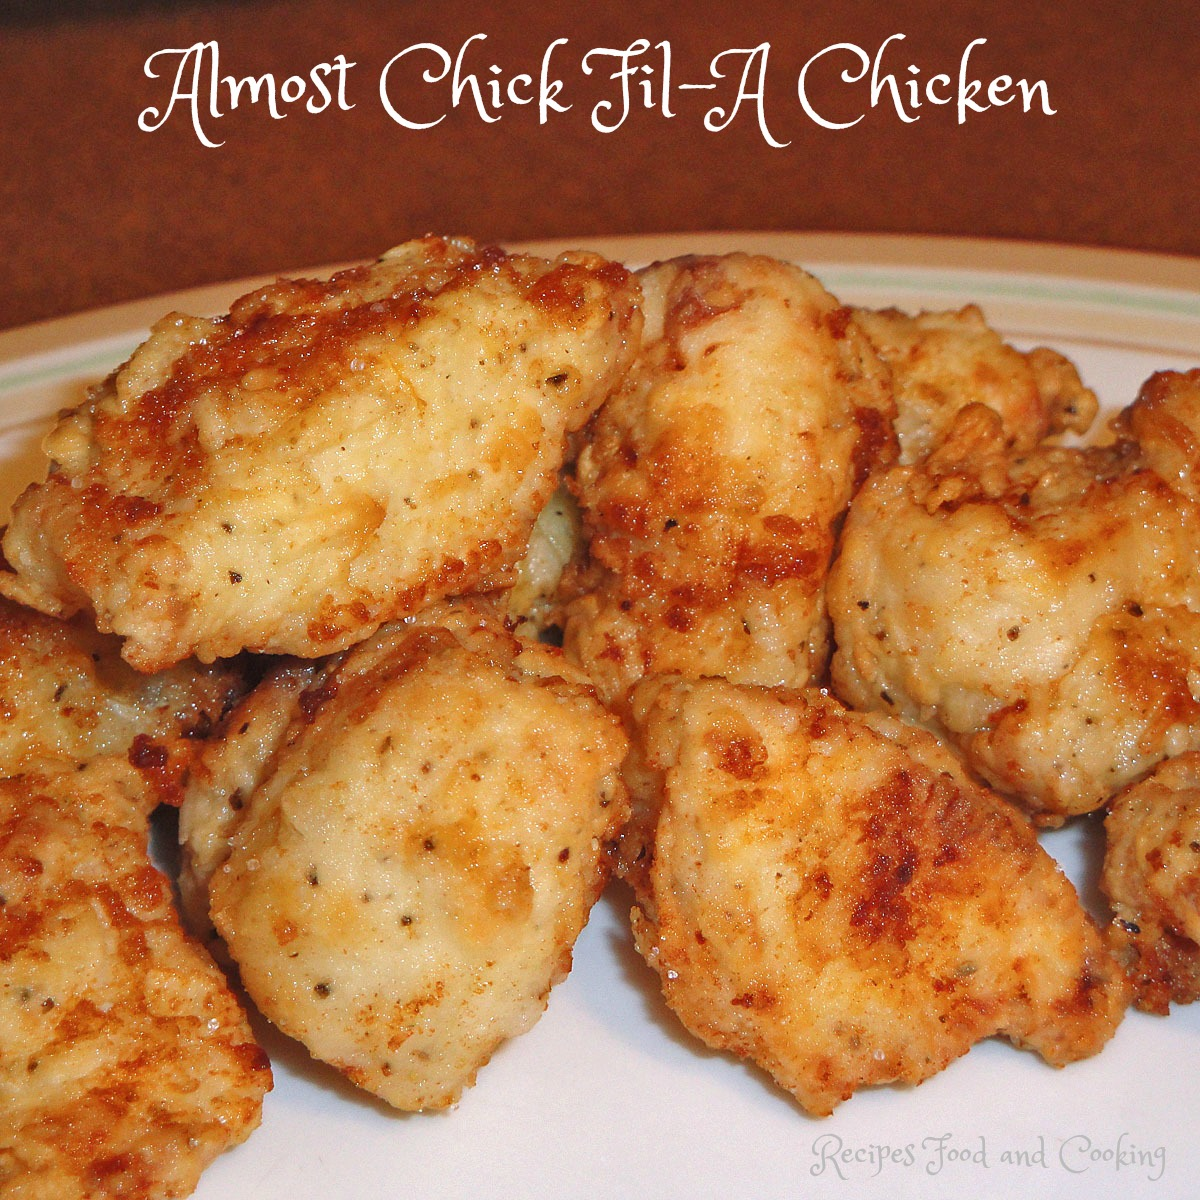 Almost Chick Fil A Chicken Recipes Food And Cooking